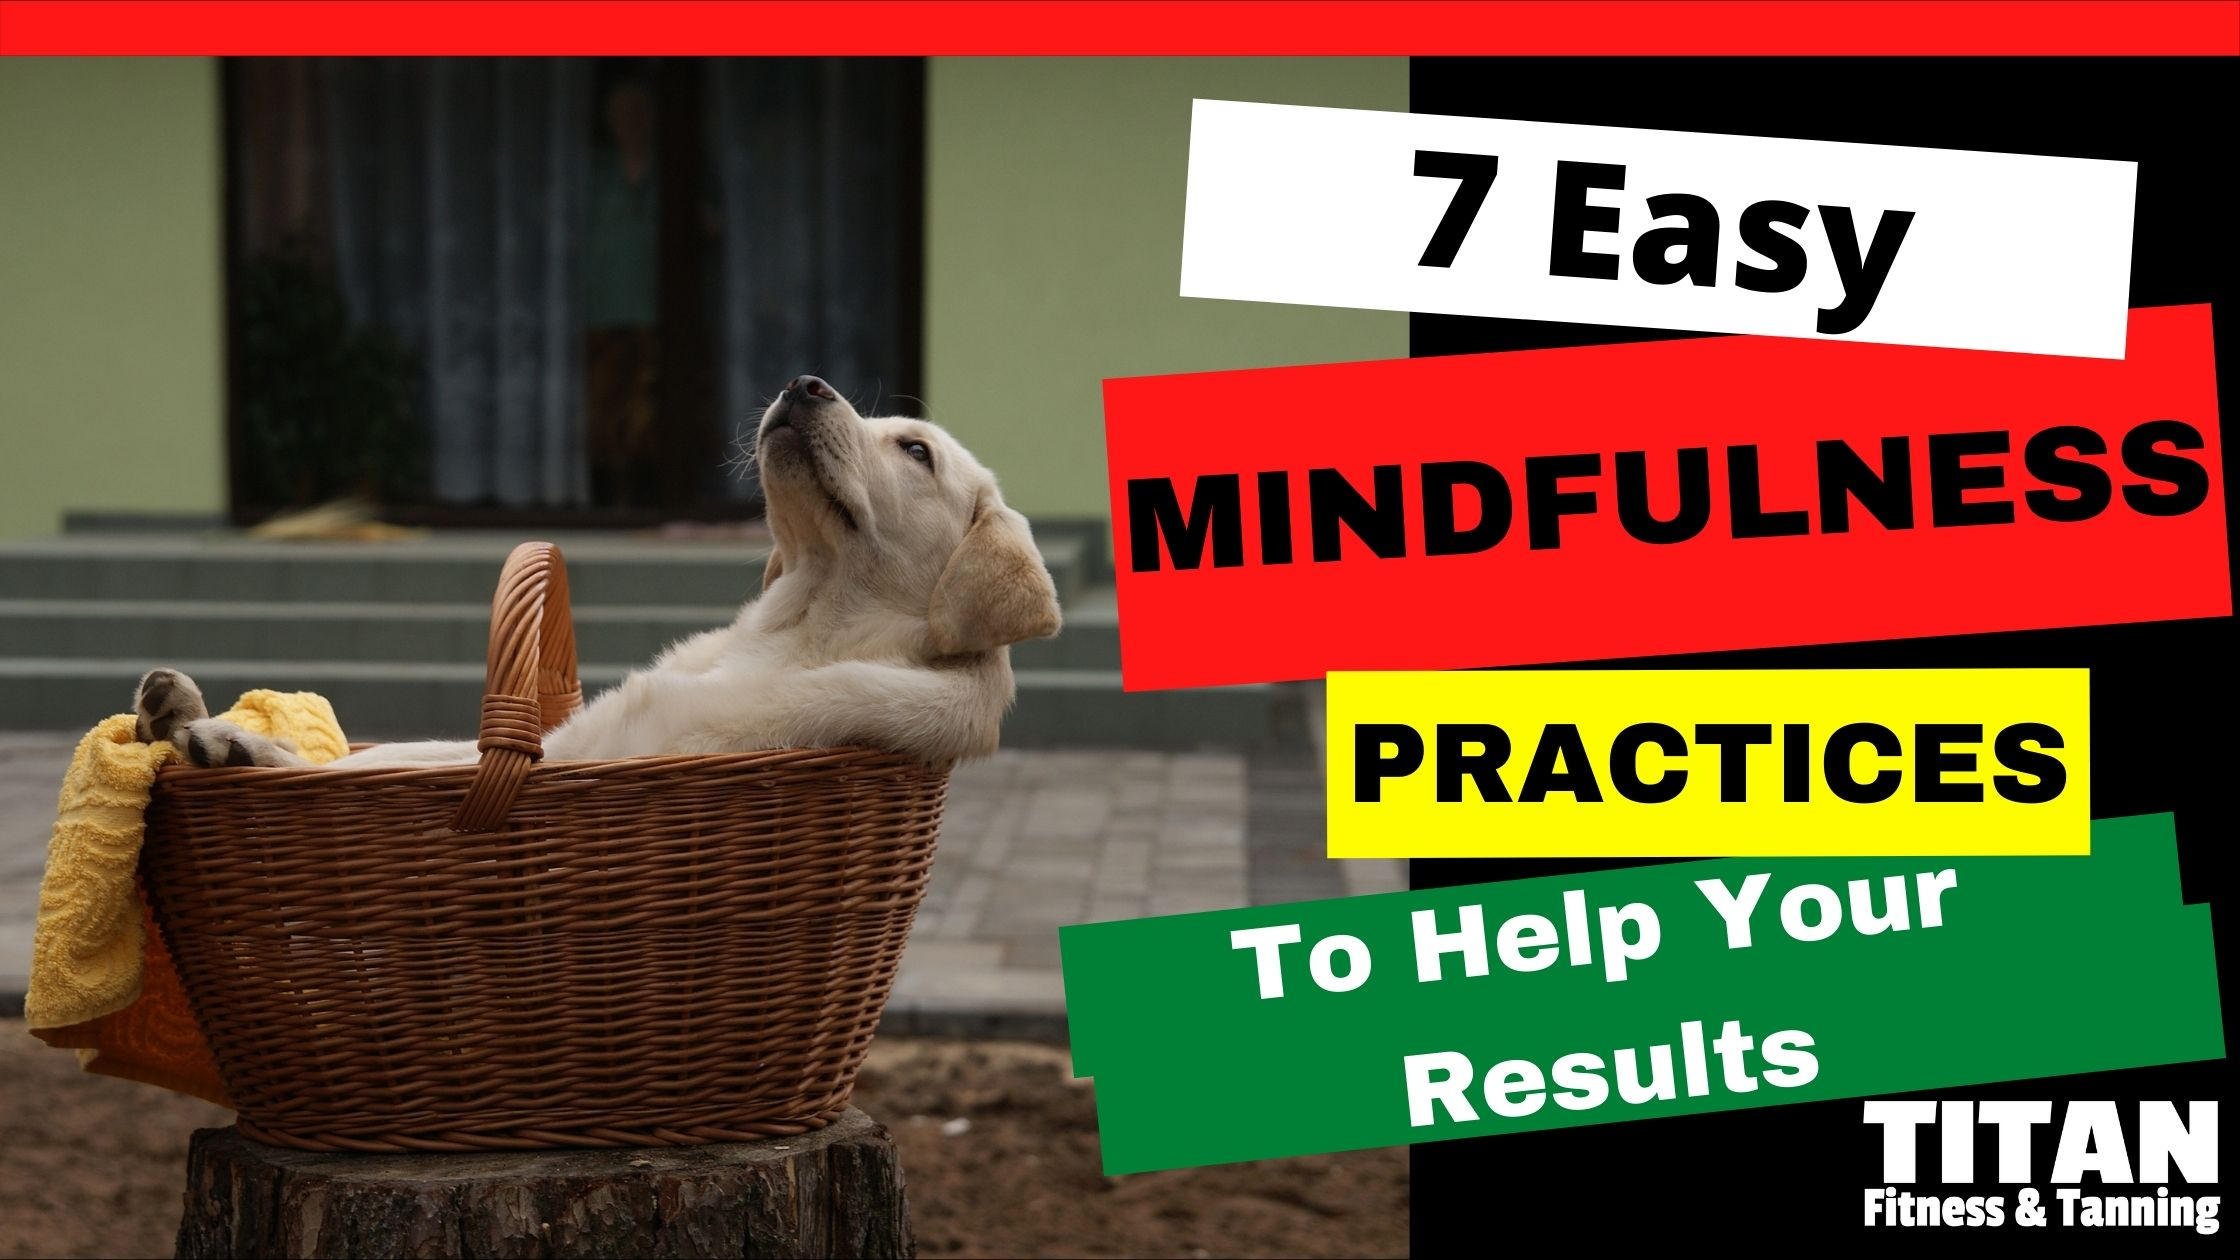 7 Easy Mindfulness Practices to Help Your Results